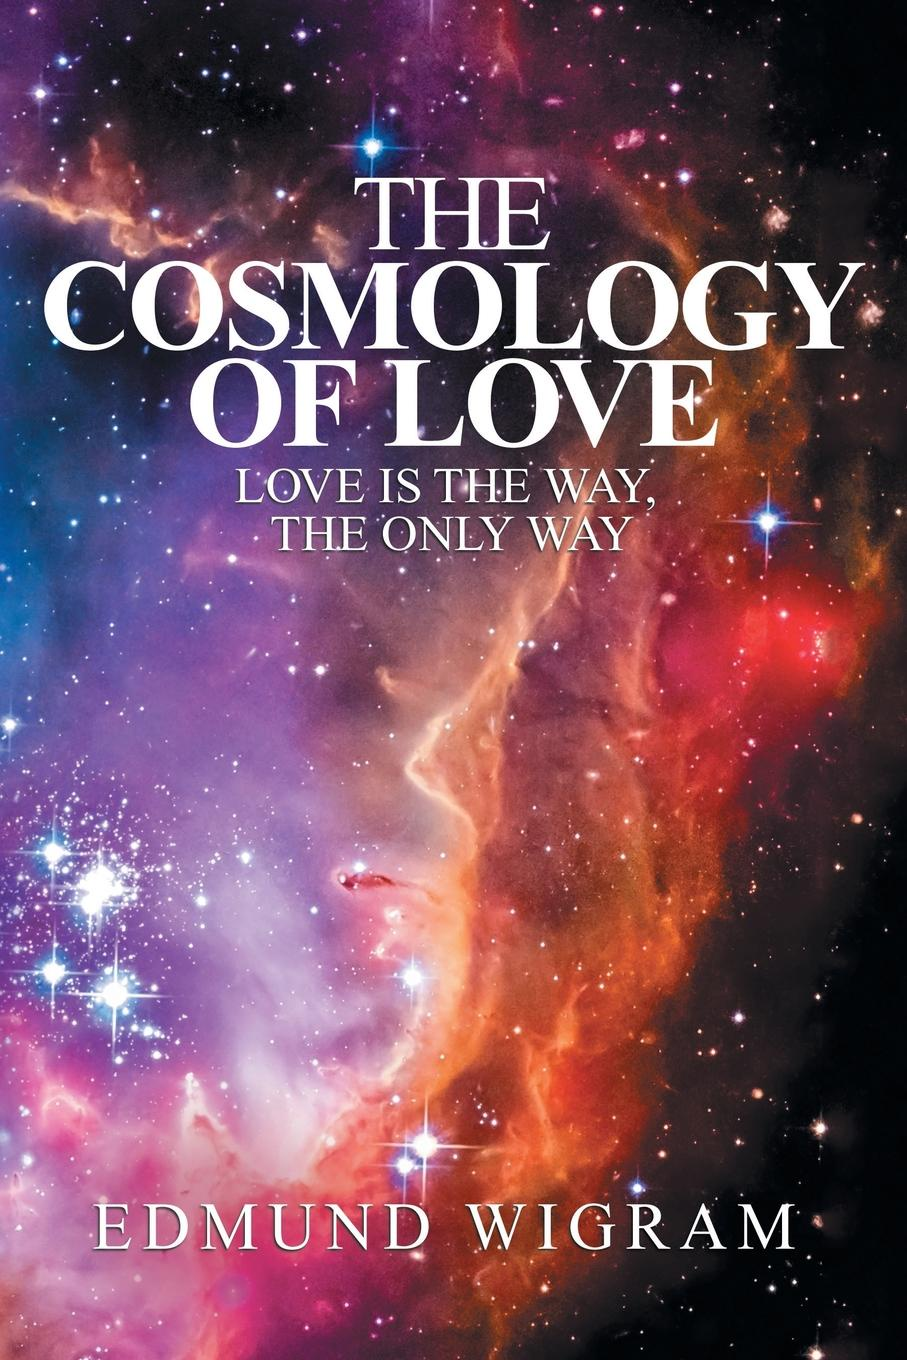 Edmund Wigram The Cosmology of Love. Love Is the Way, the Only Way learning to live the love we promise